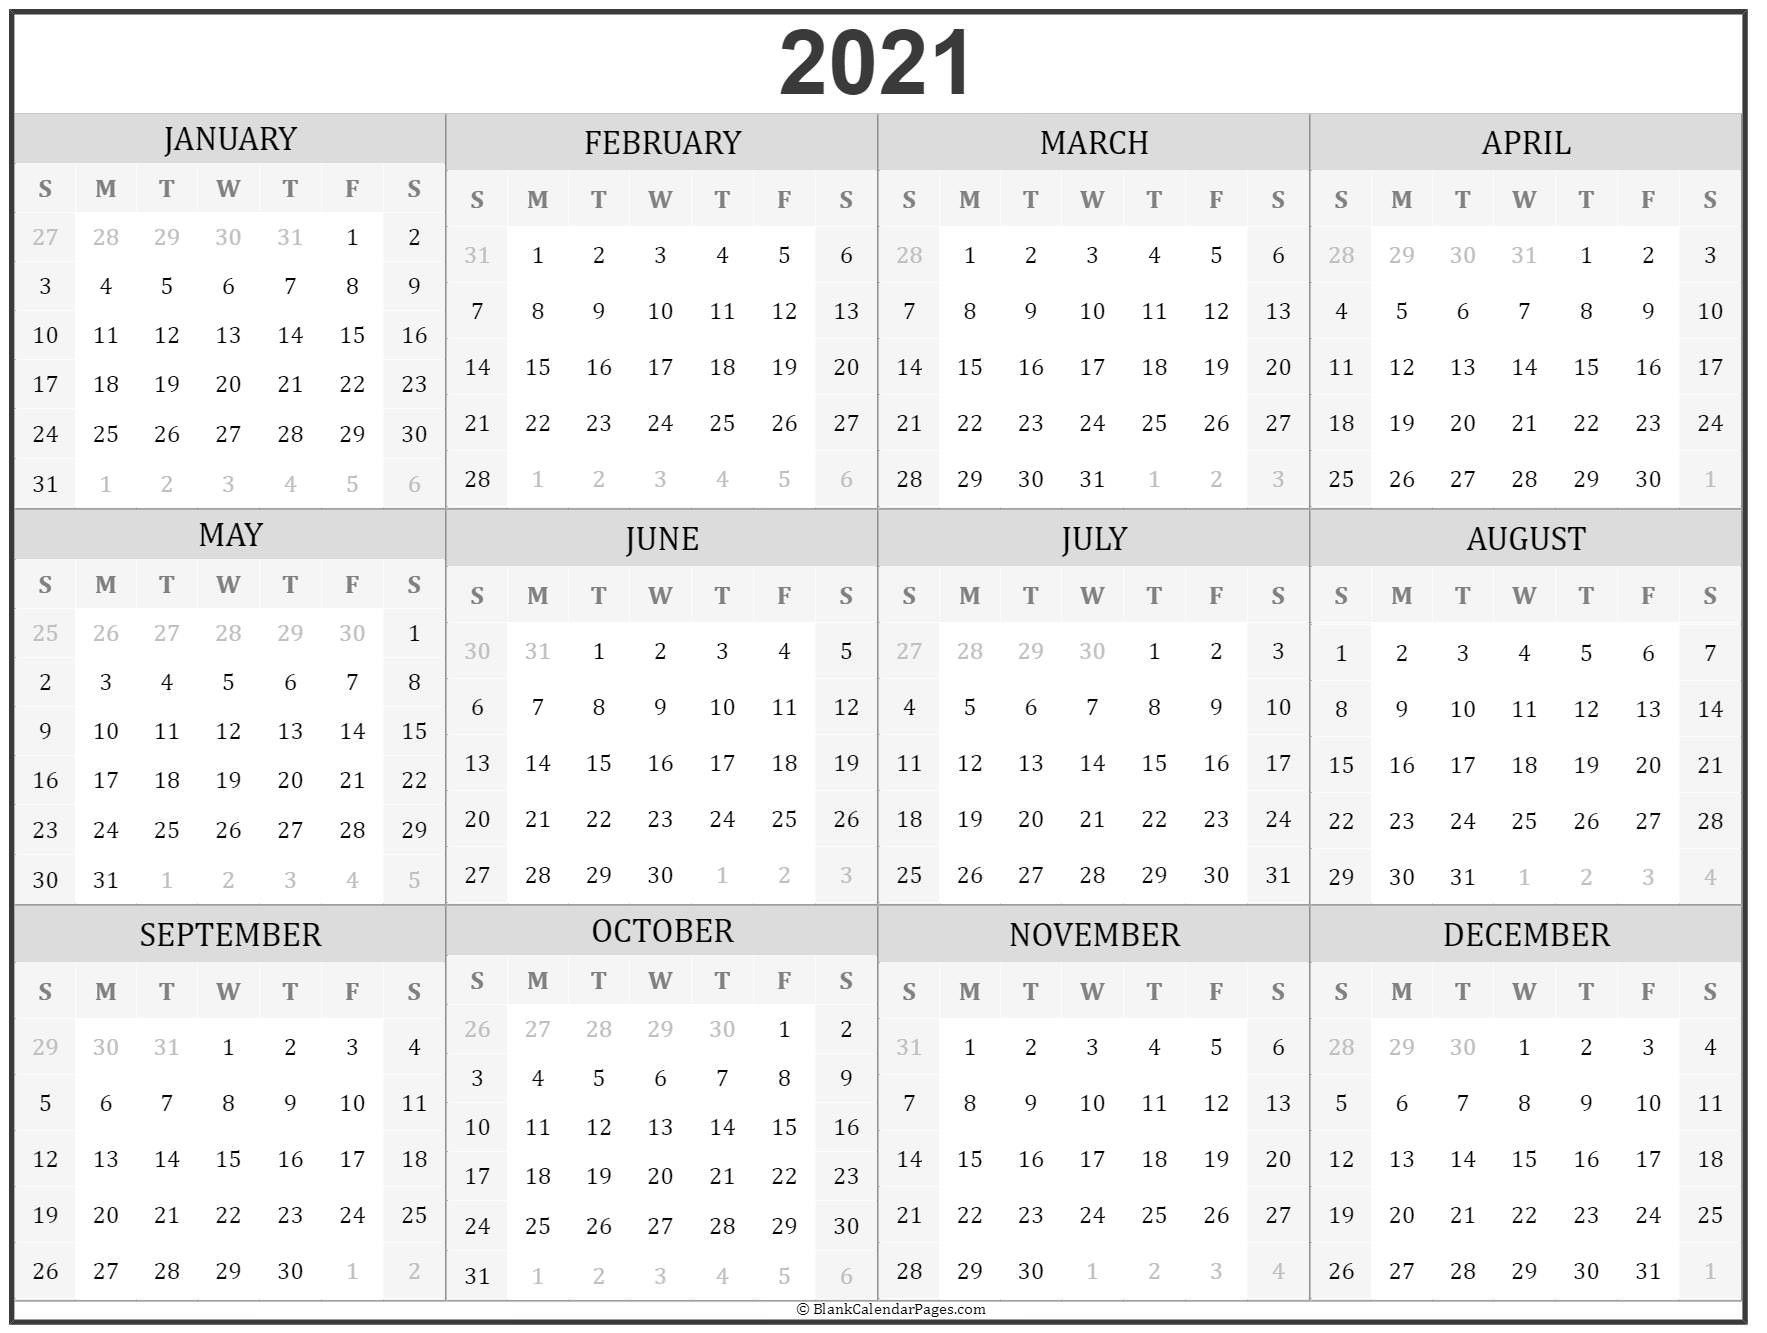 2021 Year Calendar 2021 Year Calendar 2021 Year Calendar regarding 2021 Yearly Calendar With Boxes